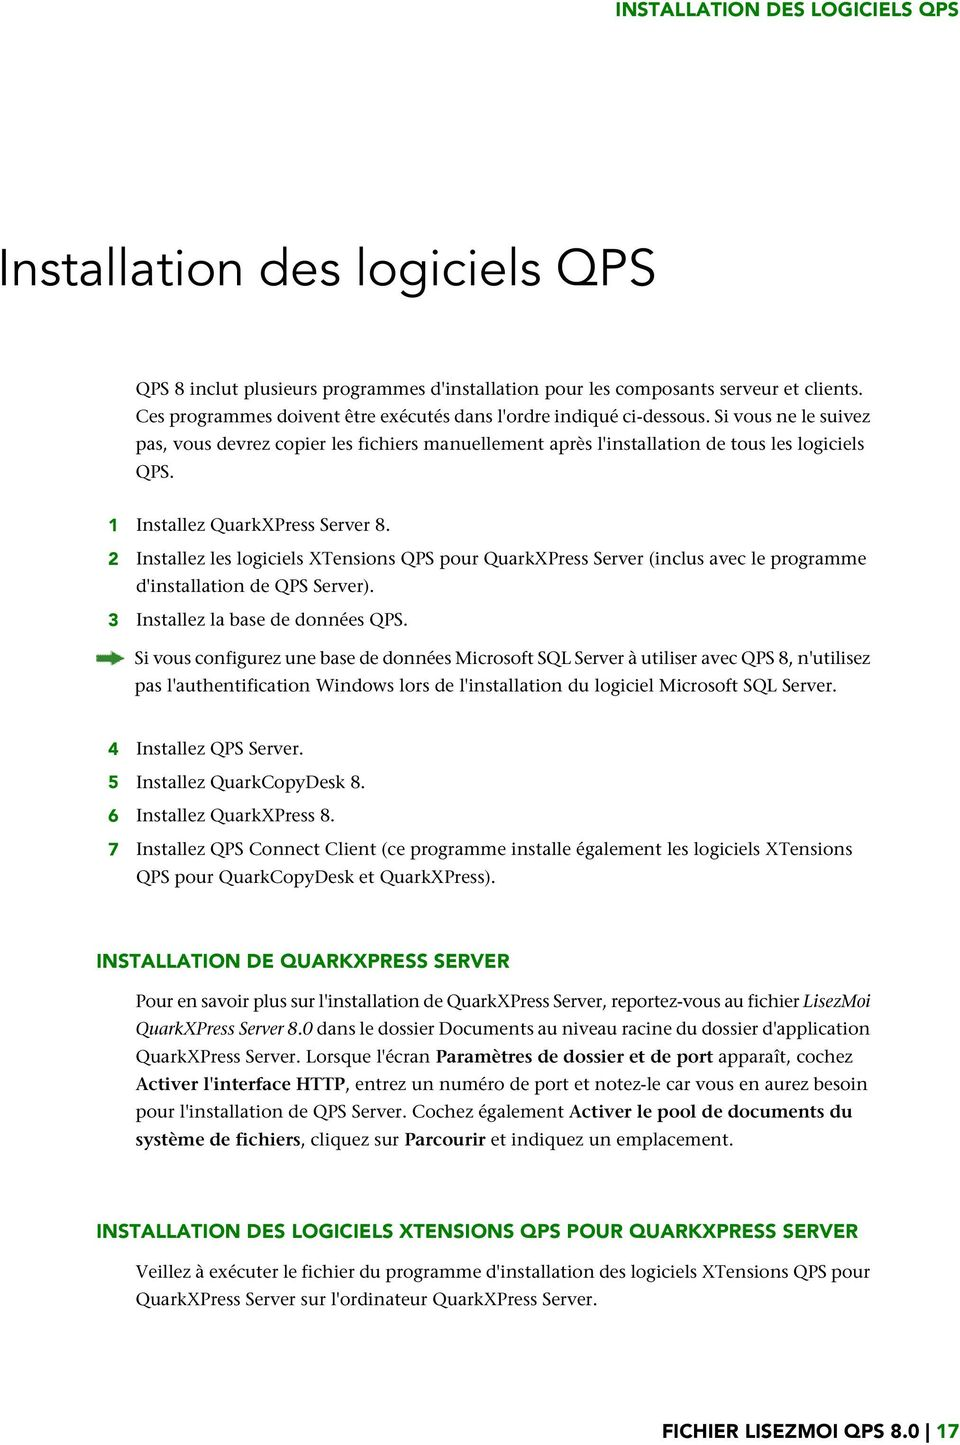 1 Installez QuarkXPress Server 8. 2 Installez les logiciels XTensions QPS pour QuarkXPress Server (inclus avec le programme d'installation de QPS Server). 3 Installez la base de données QPS.